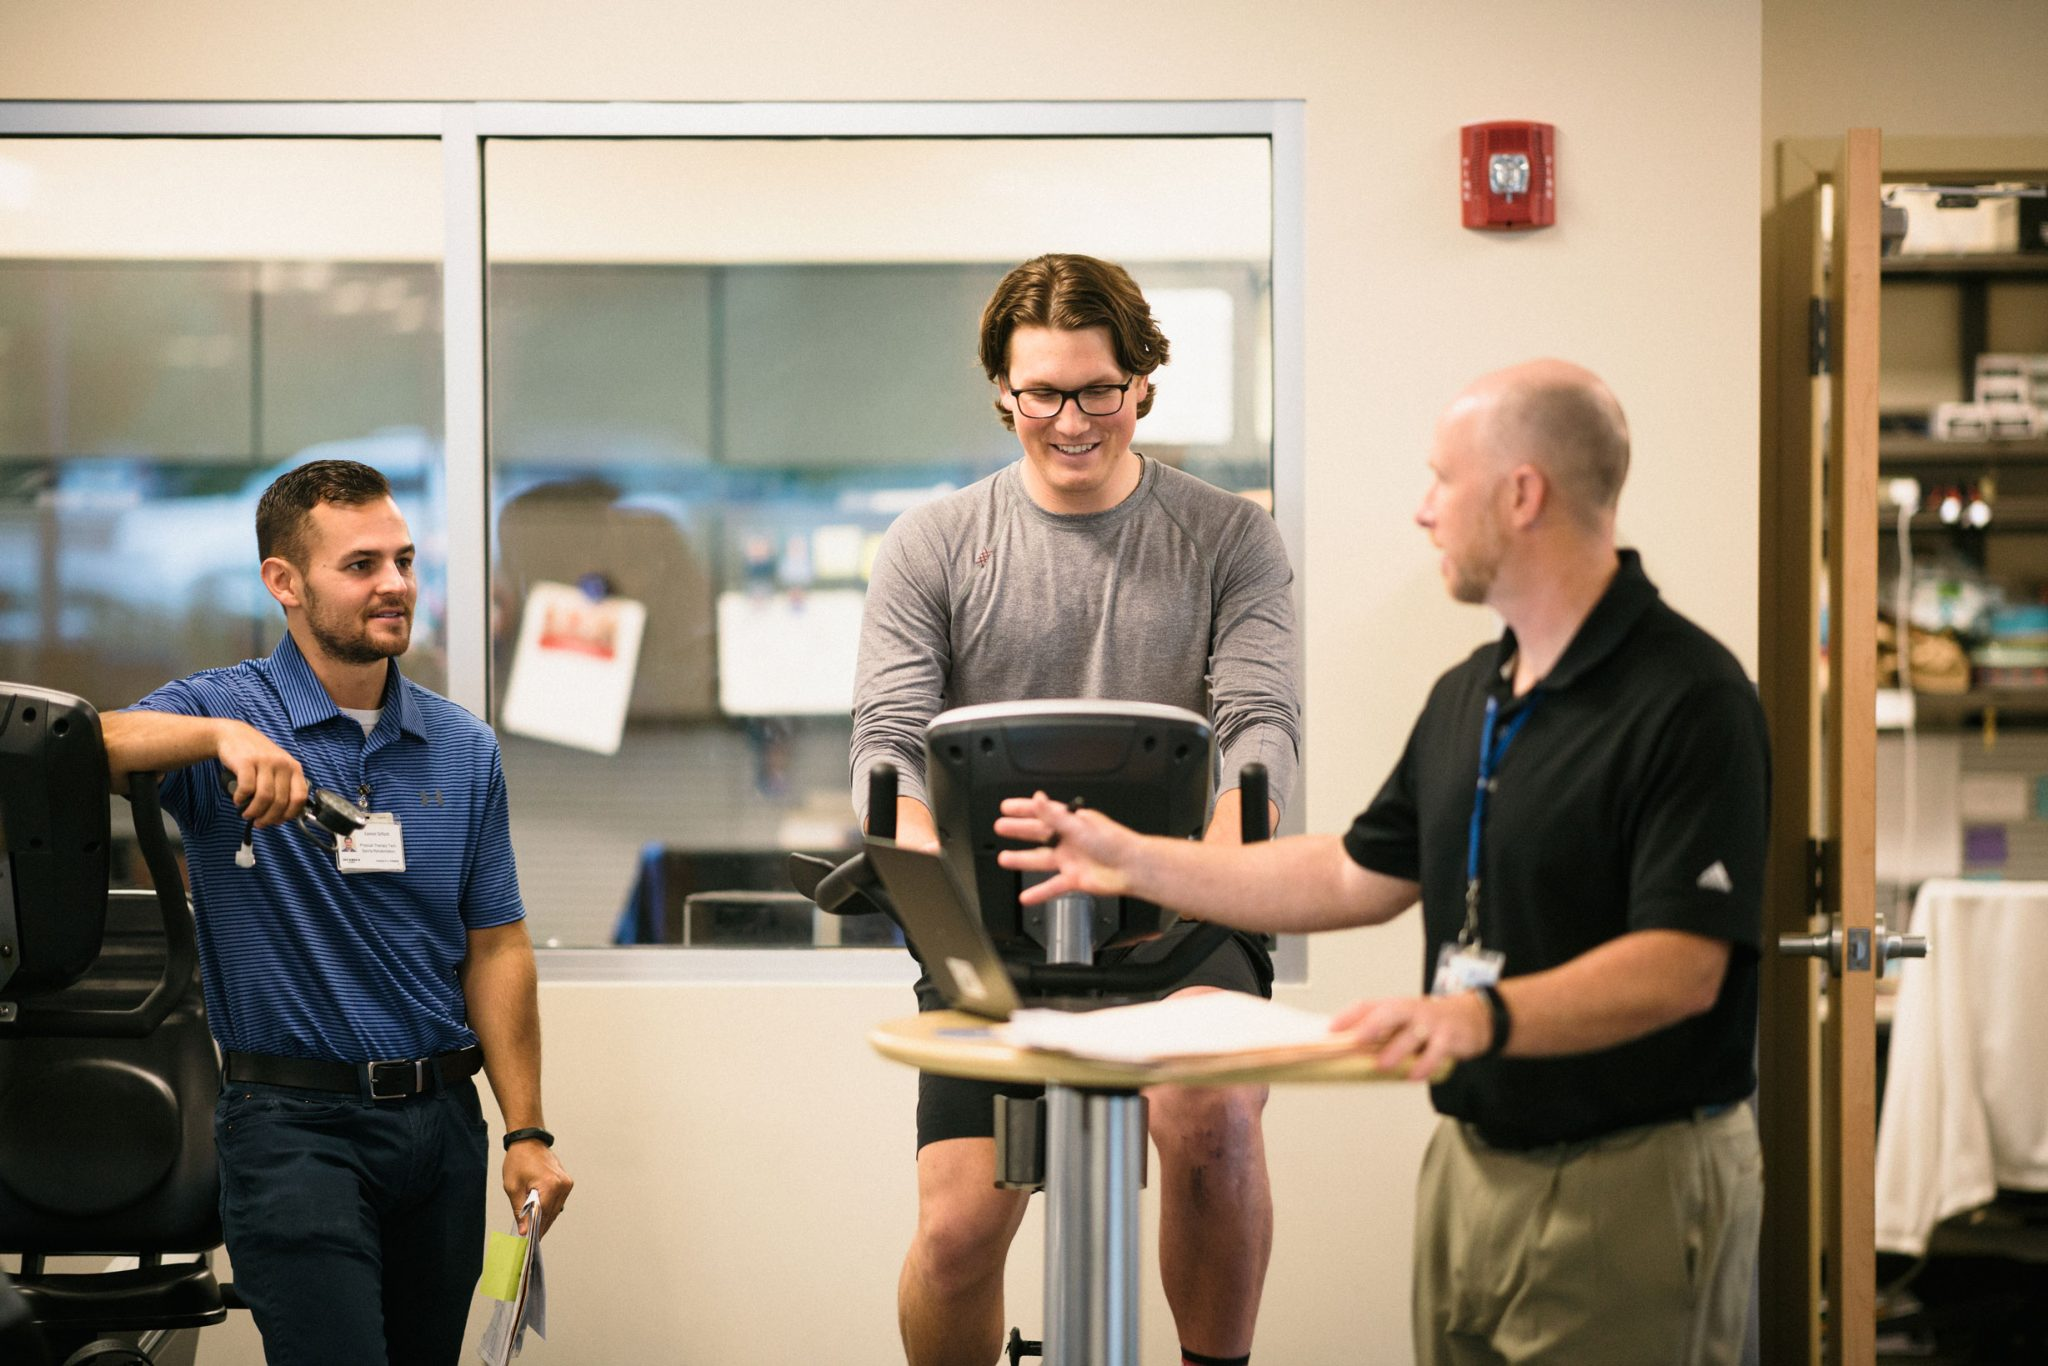 Peter's physical therapists talk while he rides a stationary bike.